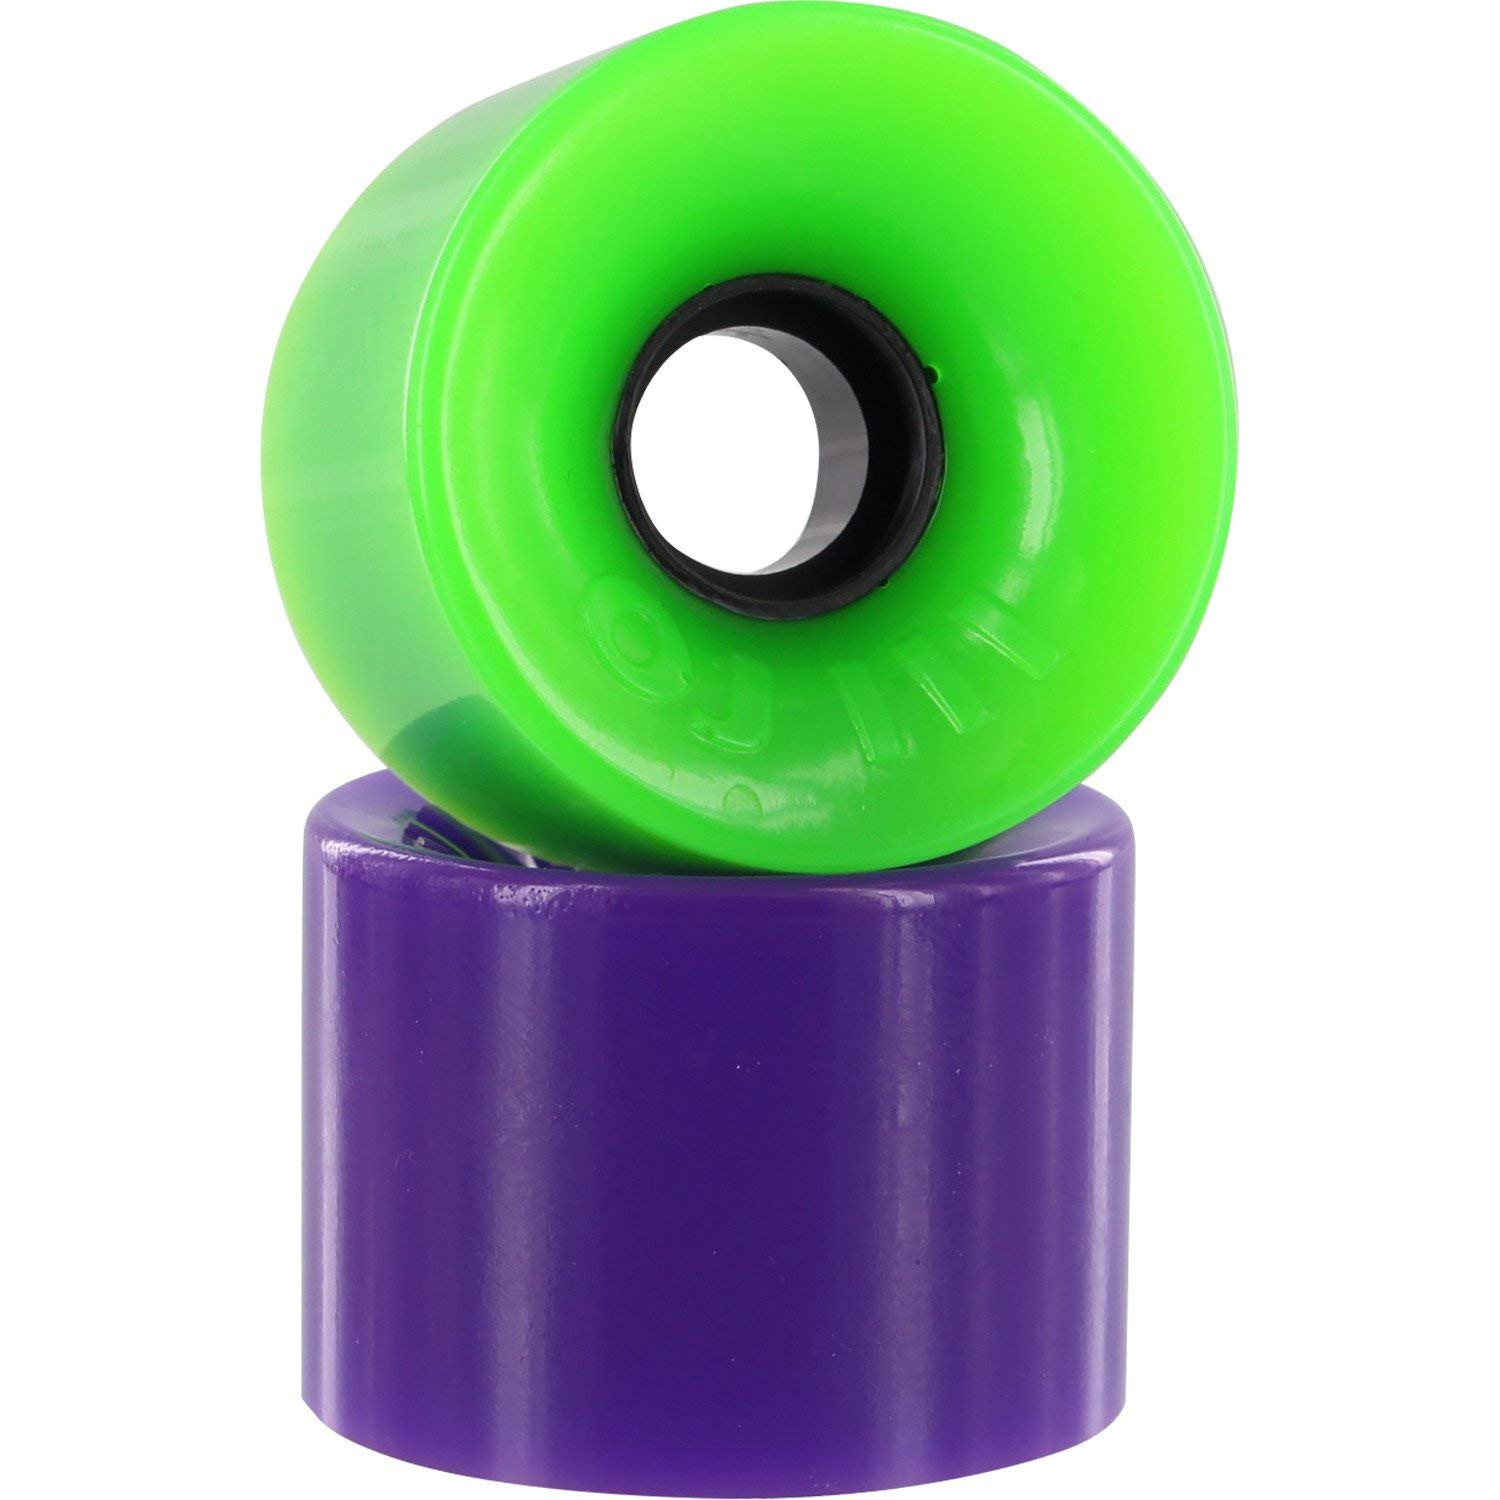 Oj Wheels Hot Juice Green/Purple Combo Longboard Skateboard Wheels - 60mm 78a (Set of 4)